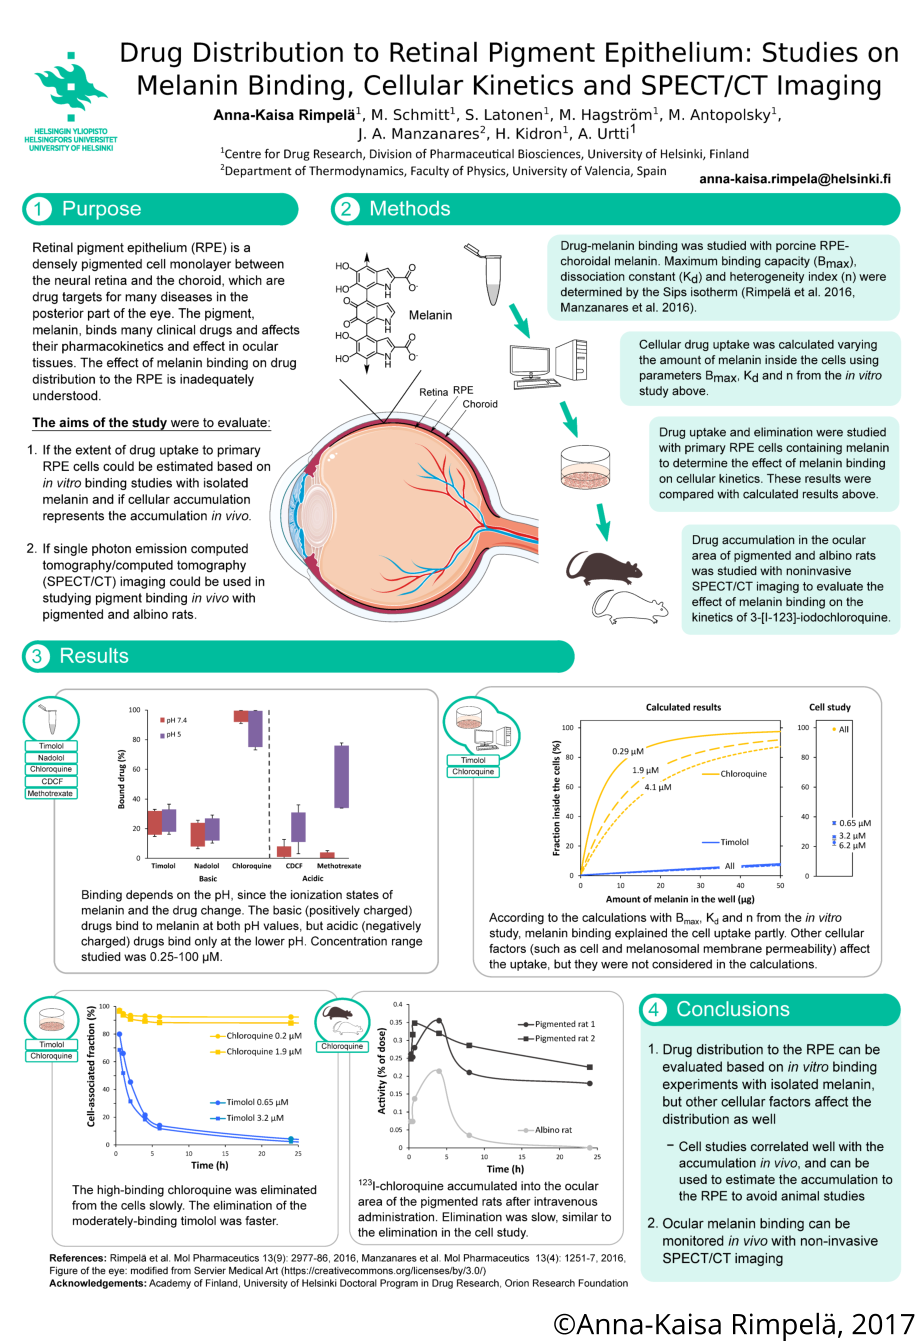 poster scientific academic posters template create research eye conference biology credible